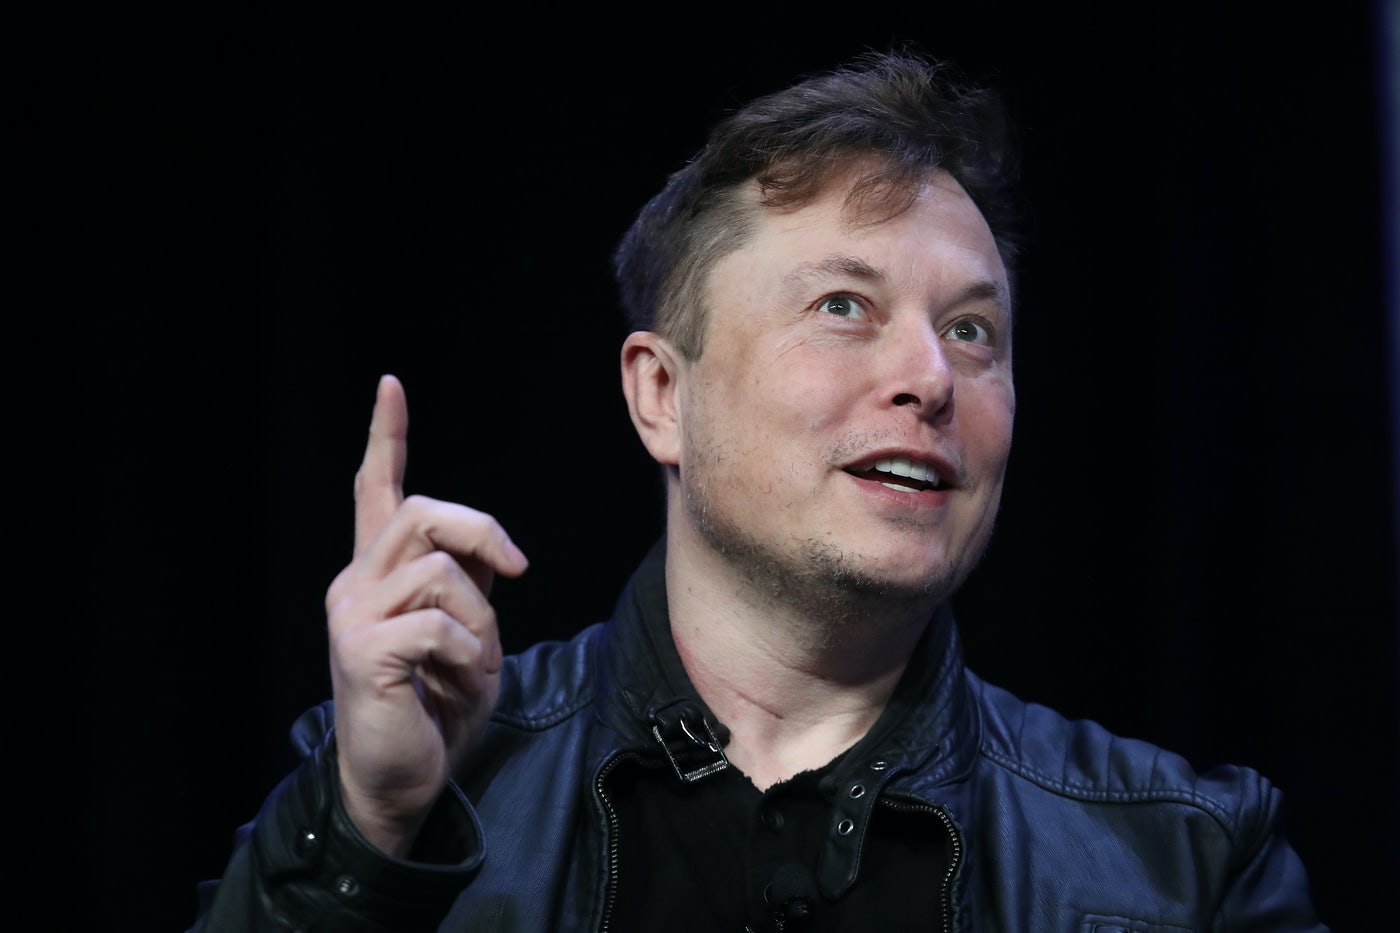 Elon Musk smiles, points a finger upwards